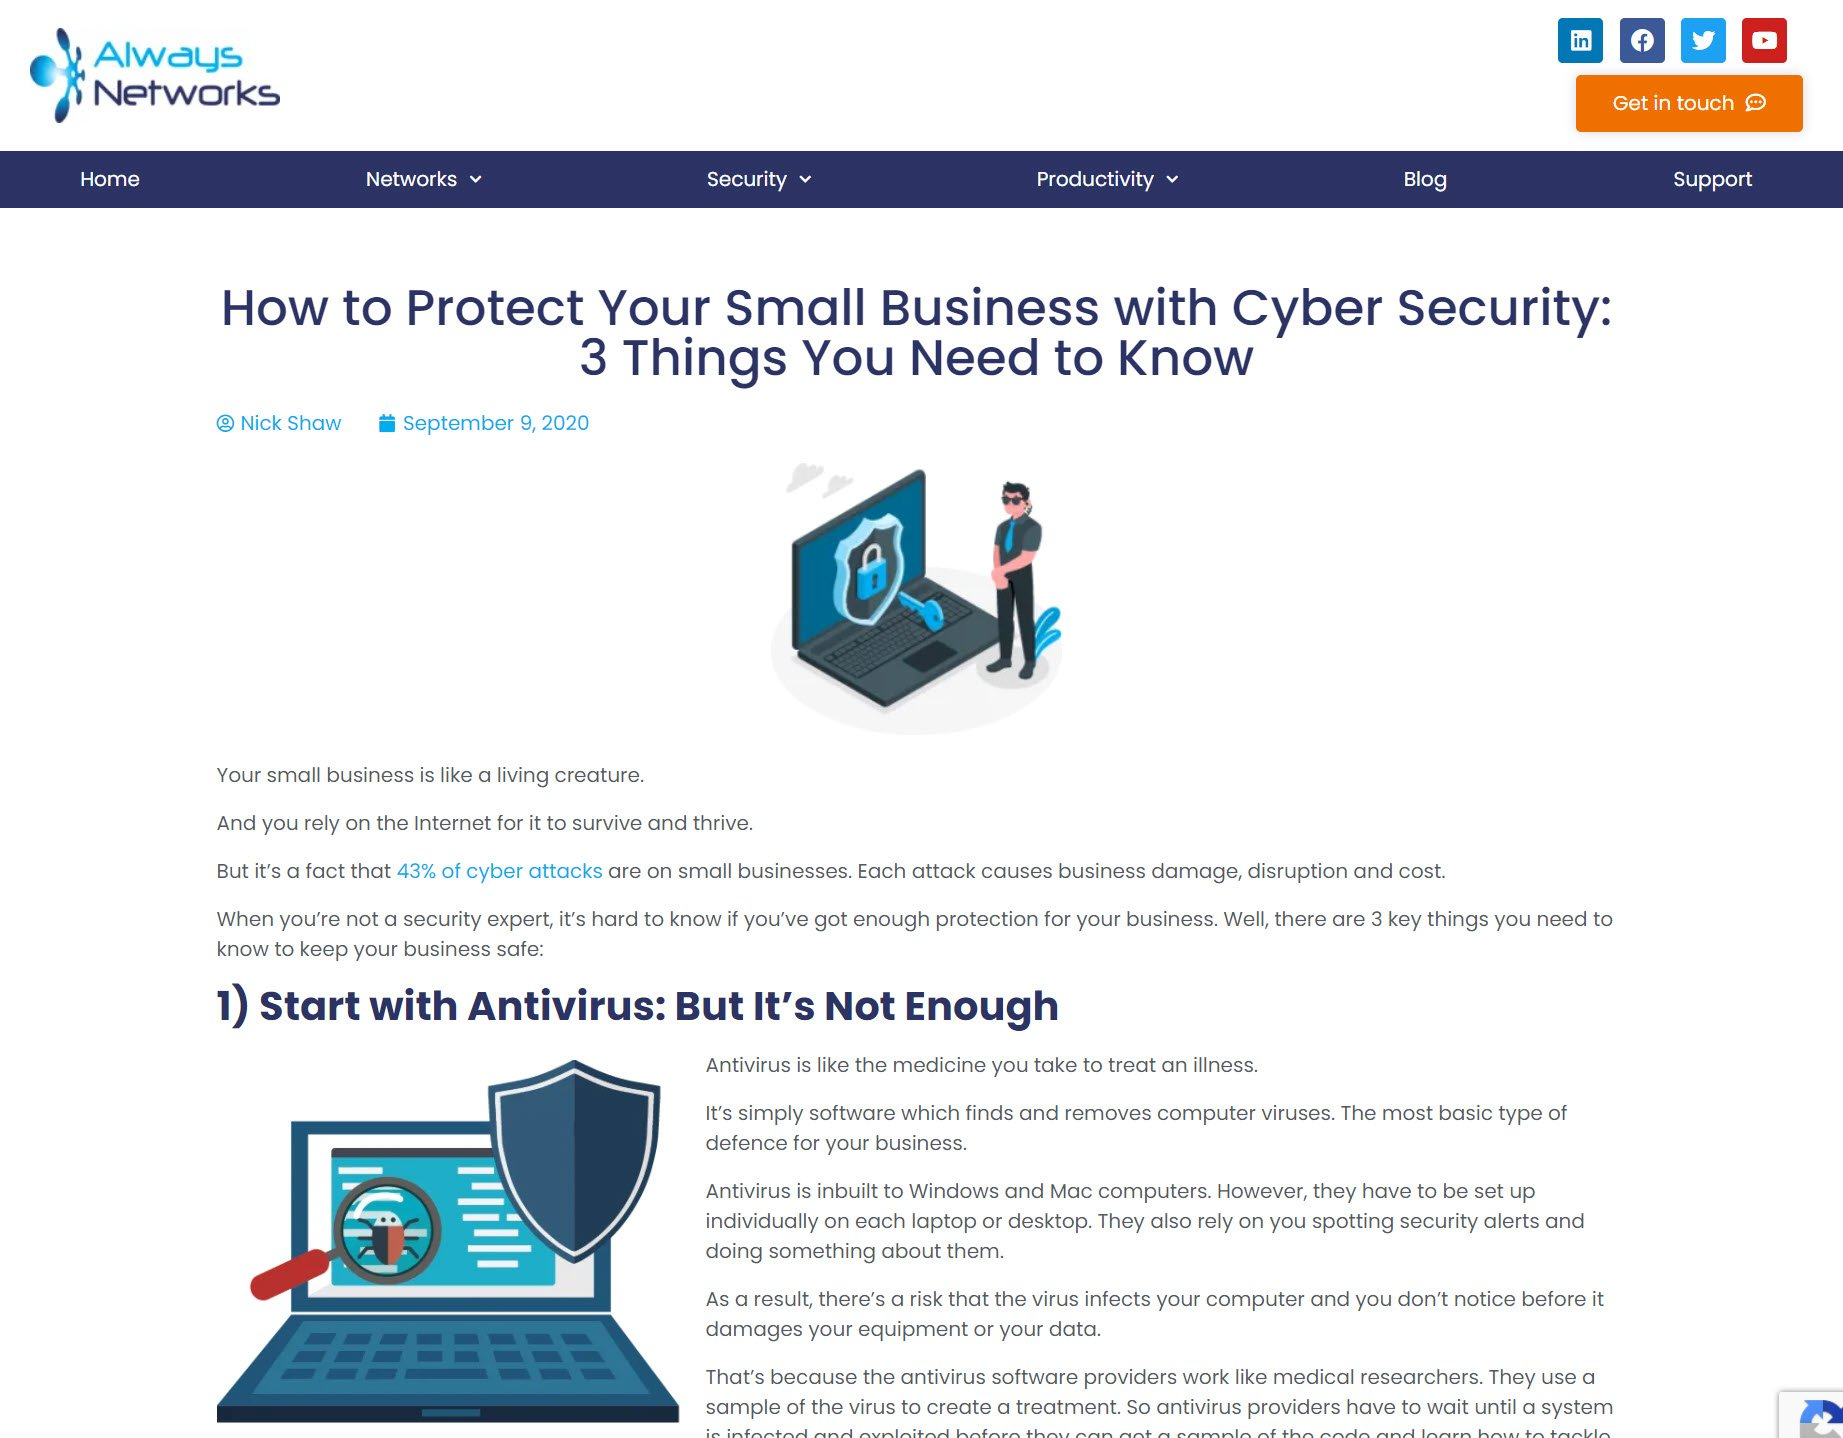 screenshot of cyber security blog post